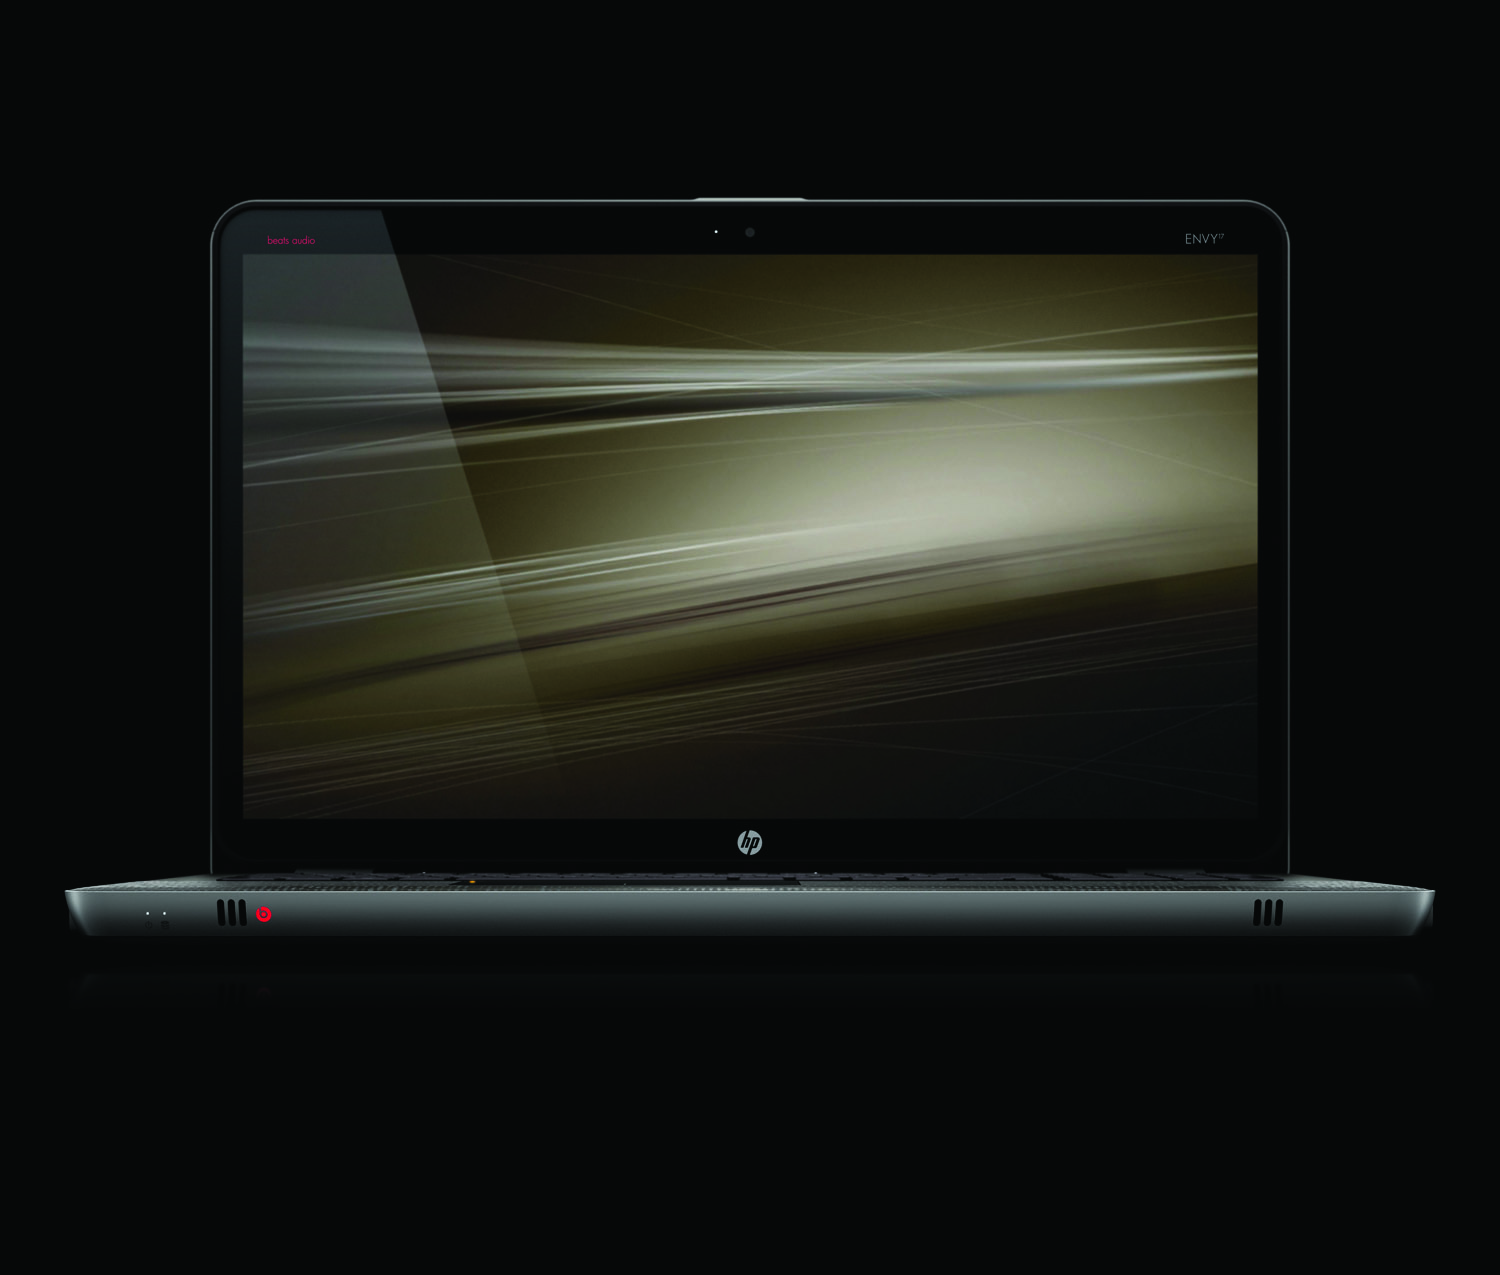 HP Envy 17, front open profile on black